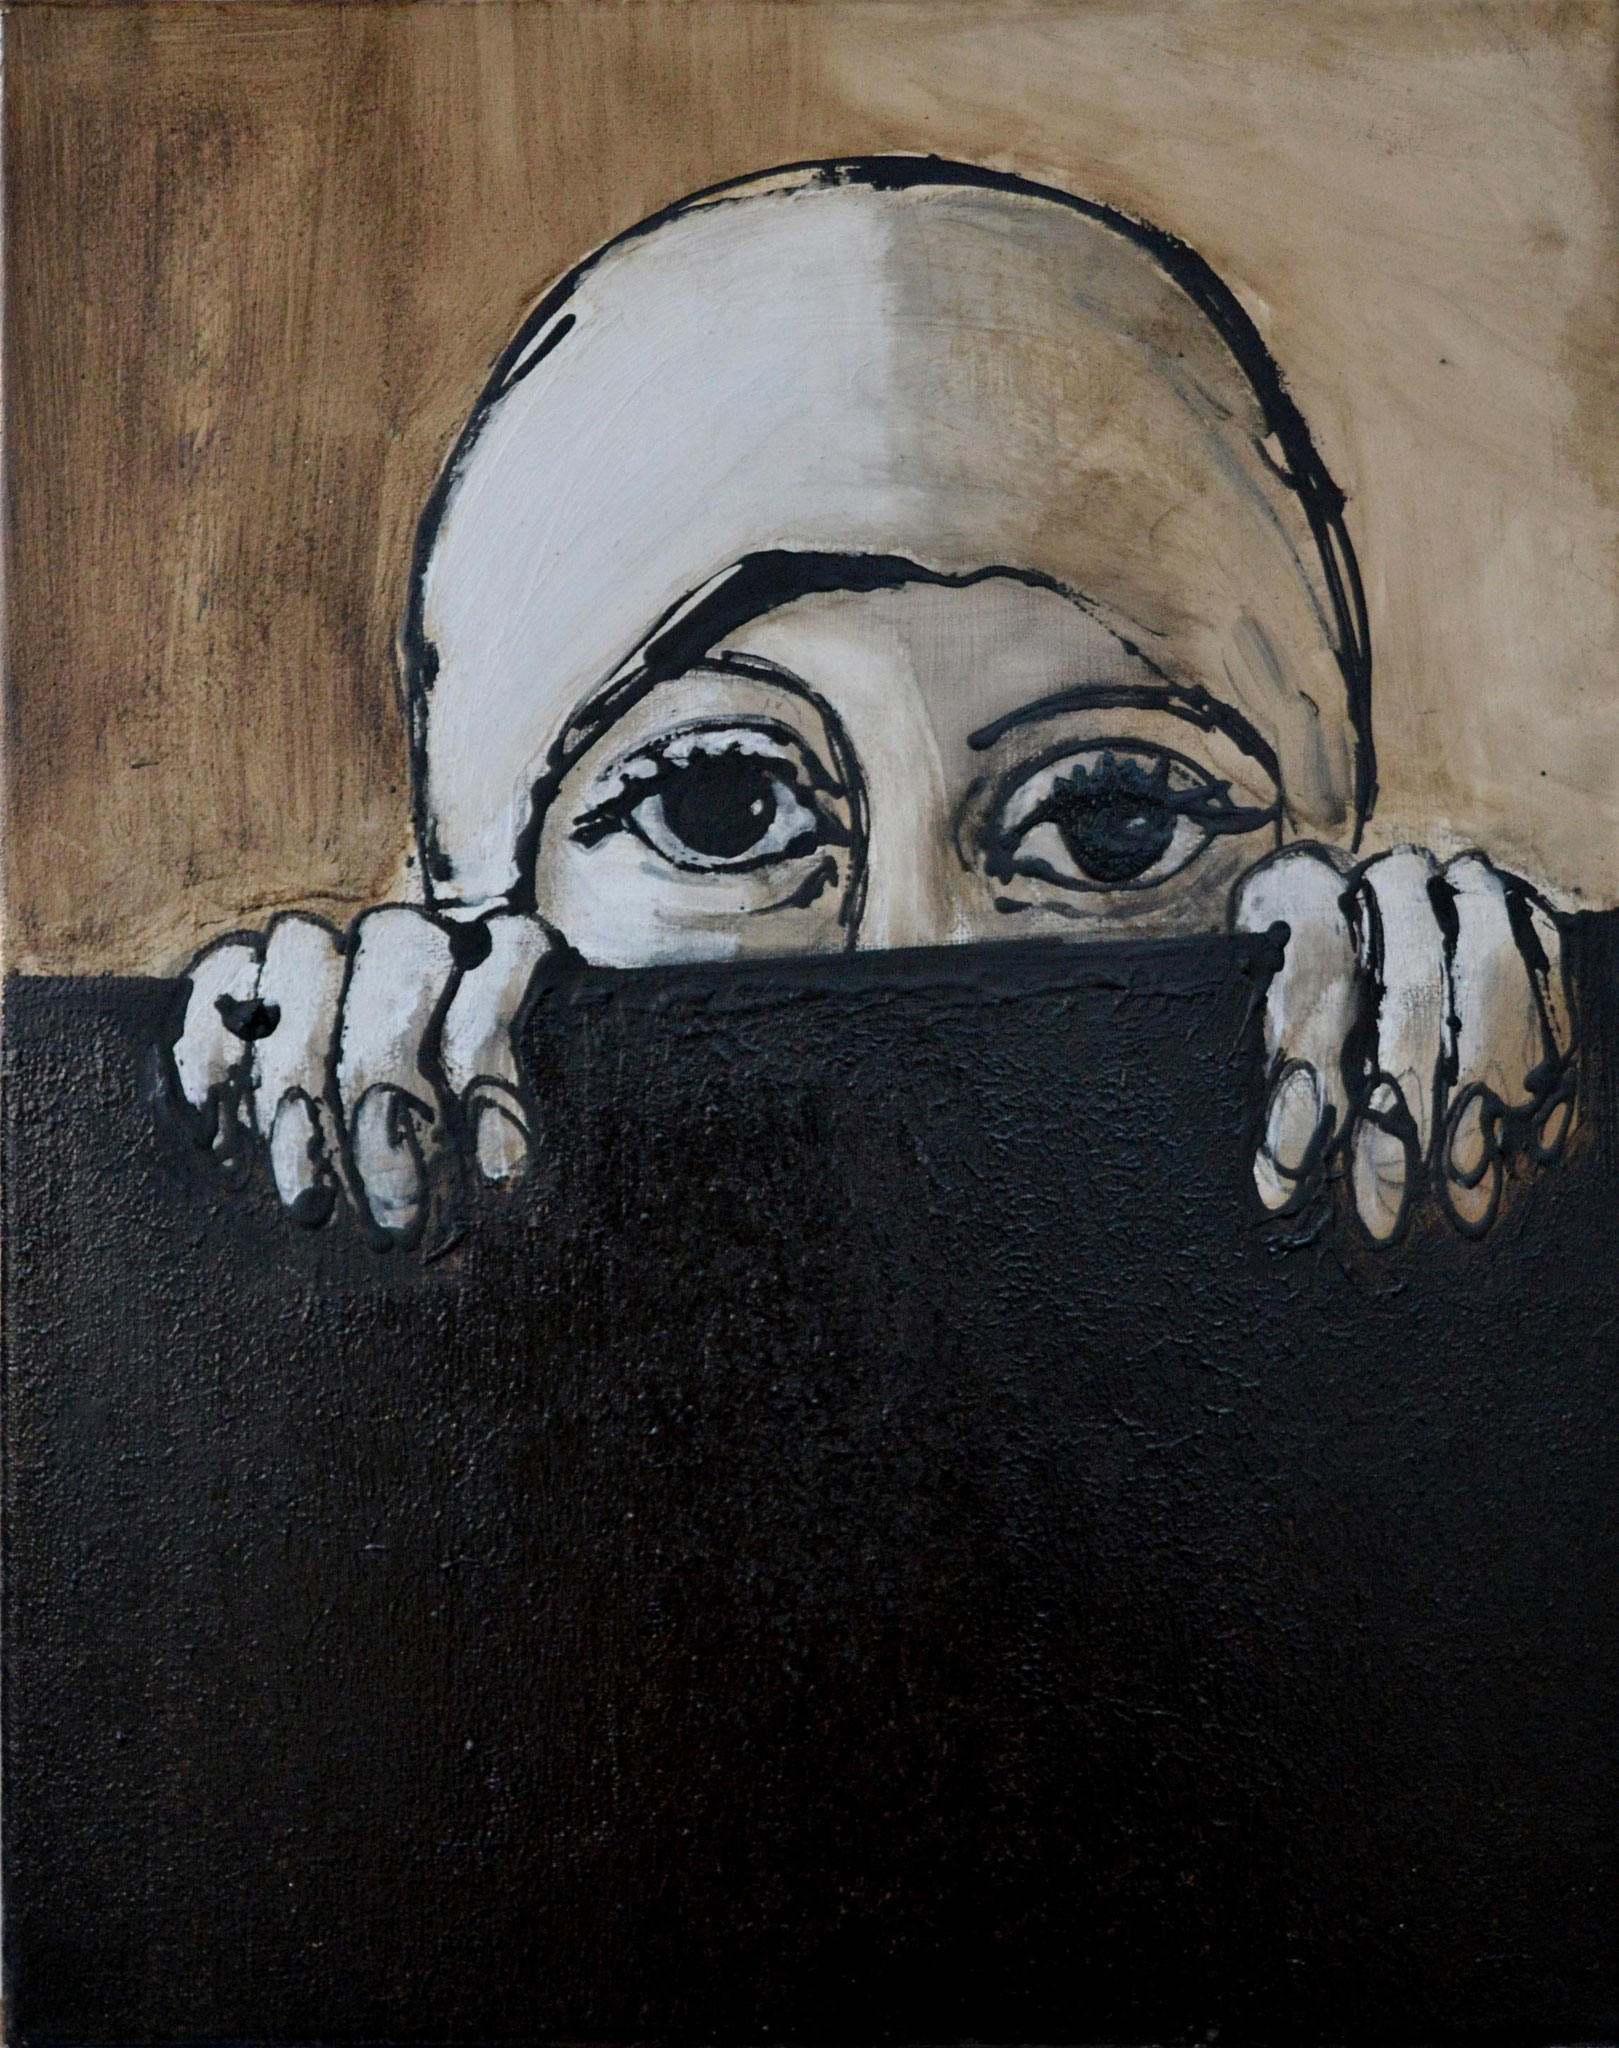 Spying woman, Acrylic and tar on canvas, 50 x 40 cm, 2014